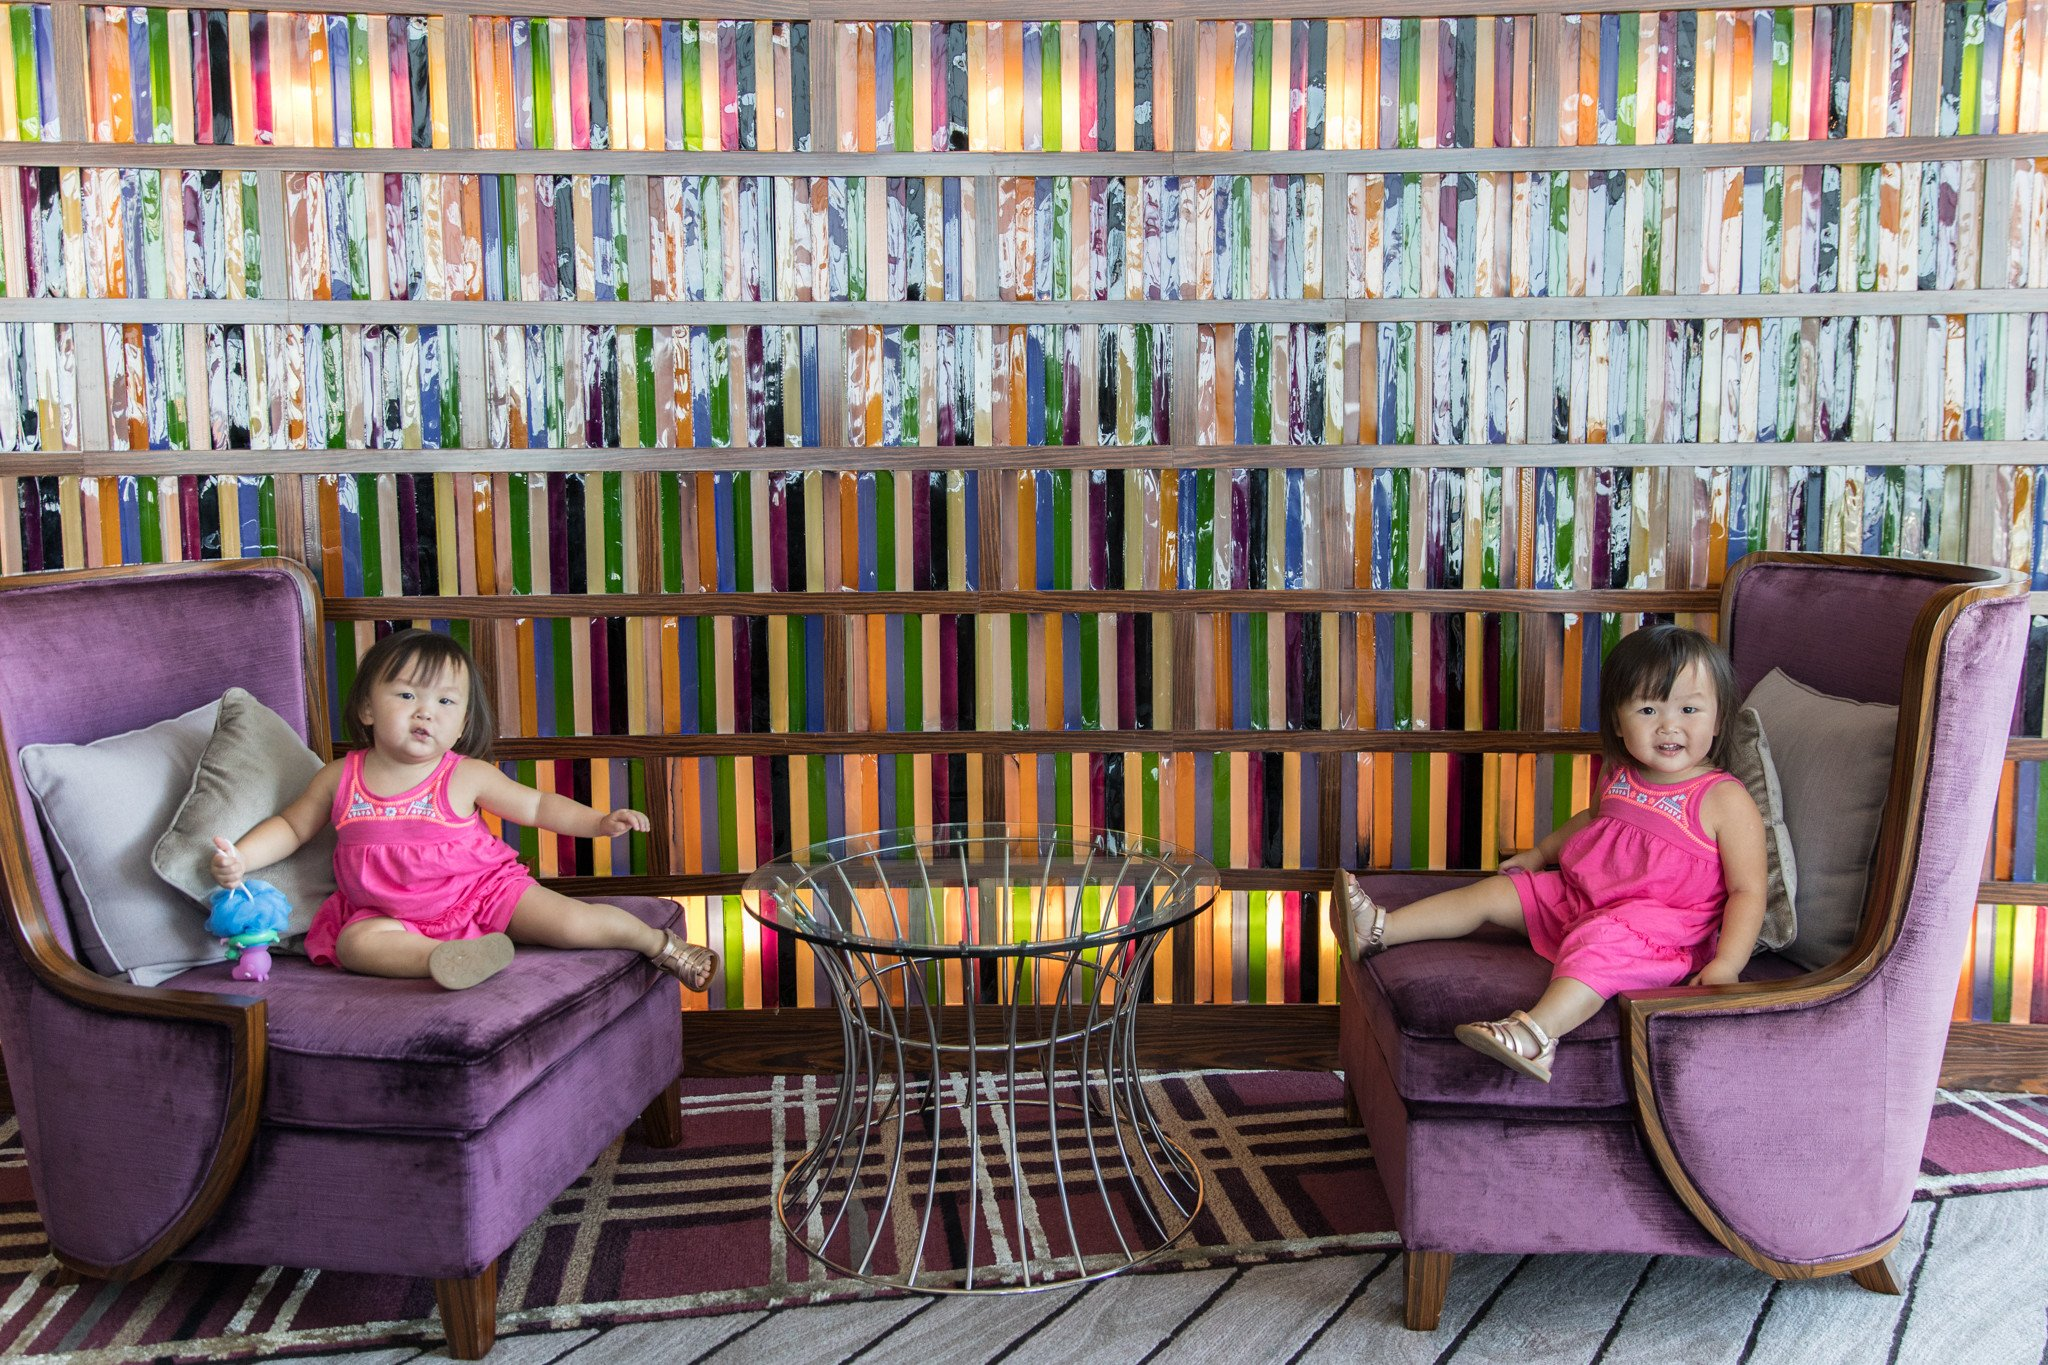 Loving the 'photo-worthy' colourful tiles that looks more like a whimsical library from afar.